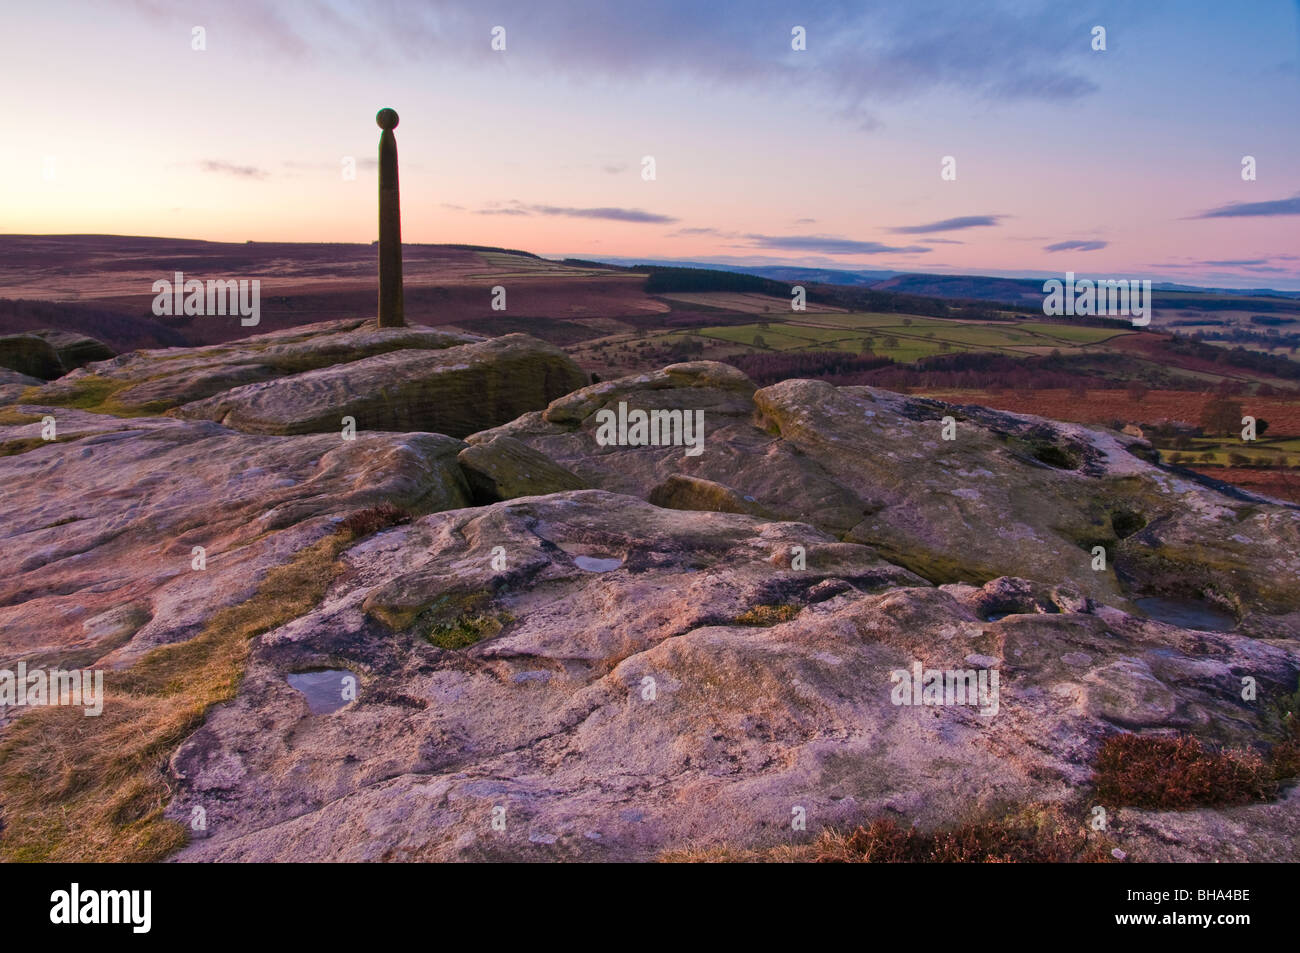 A winters sunrise on Birchen Edge in the Peak District National Park, with Nelsons Monument standing proud on the Stock Photo